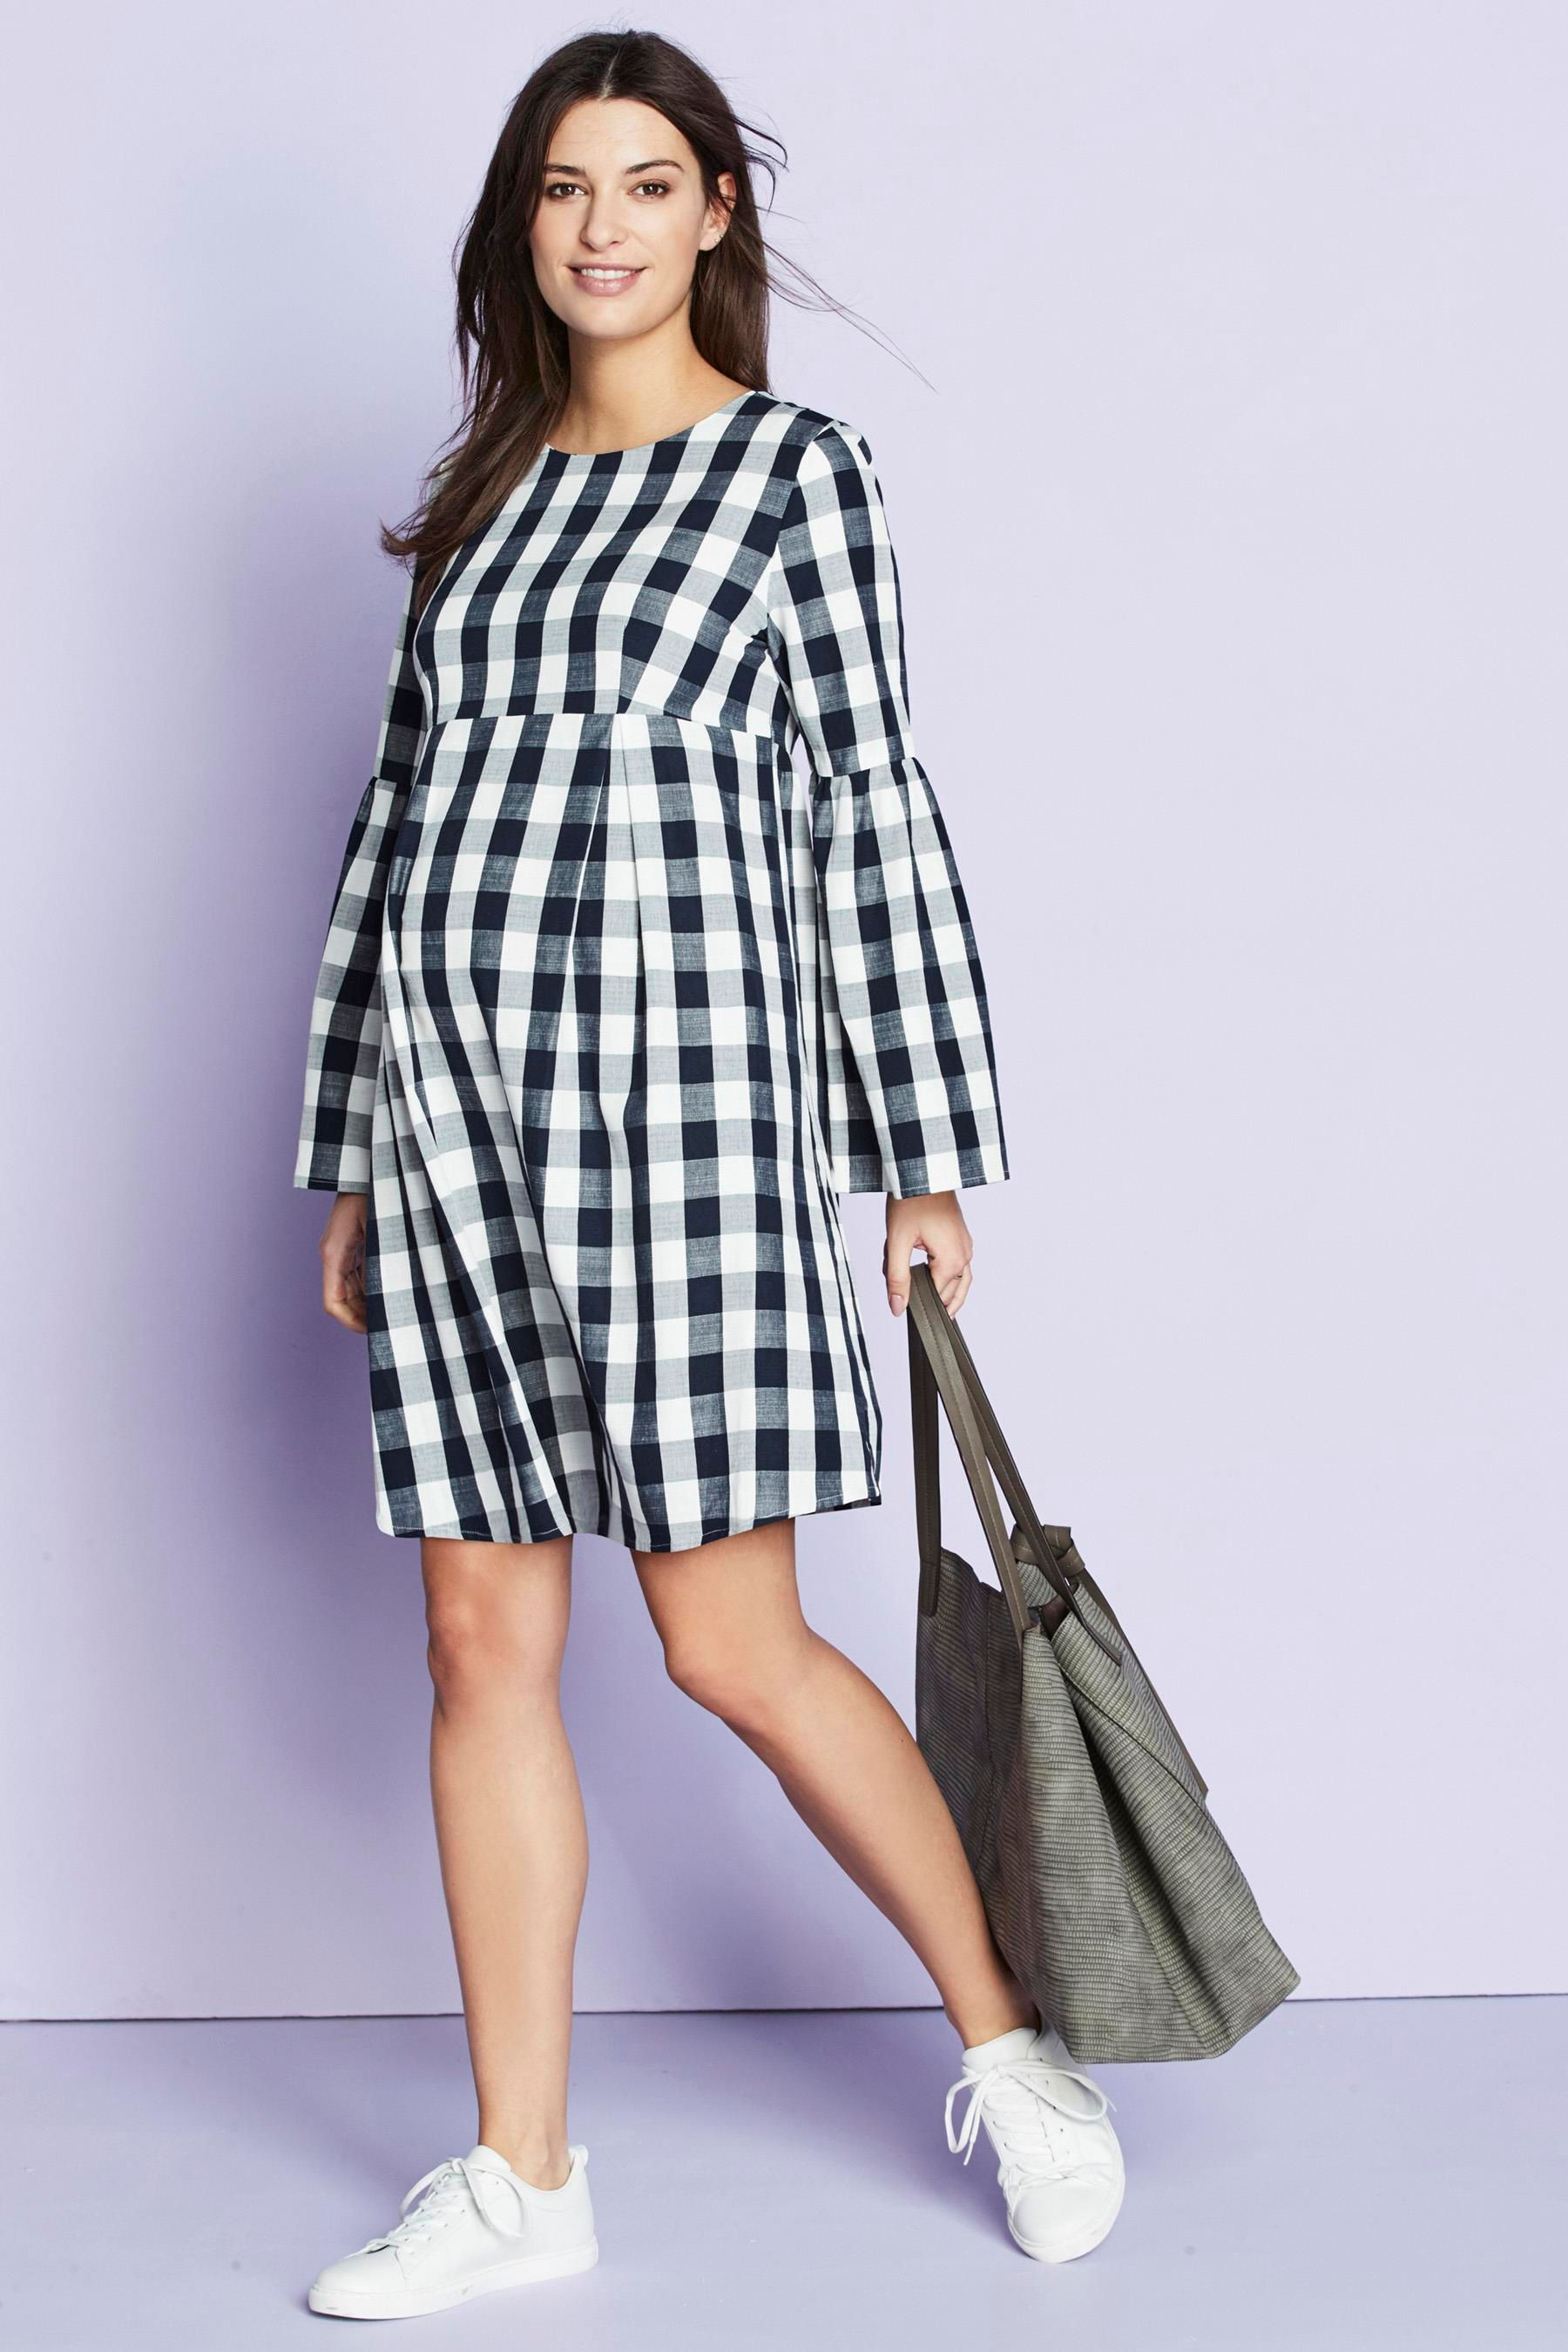 f016cb74c7d Black And White Gingham Maternity Dress - Dress Foto and Picture